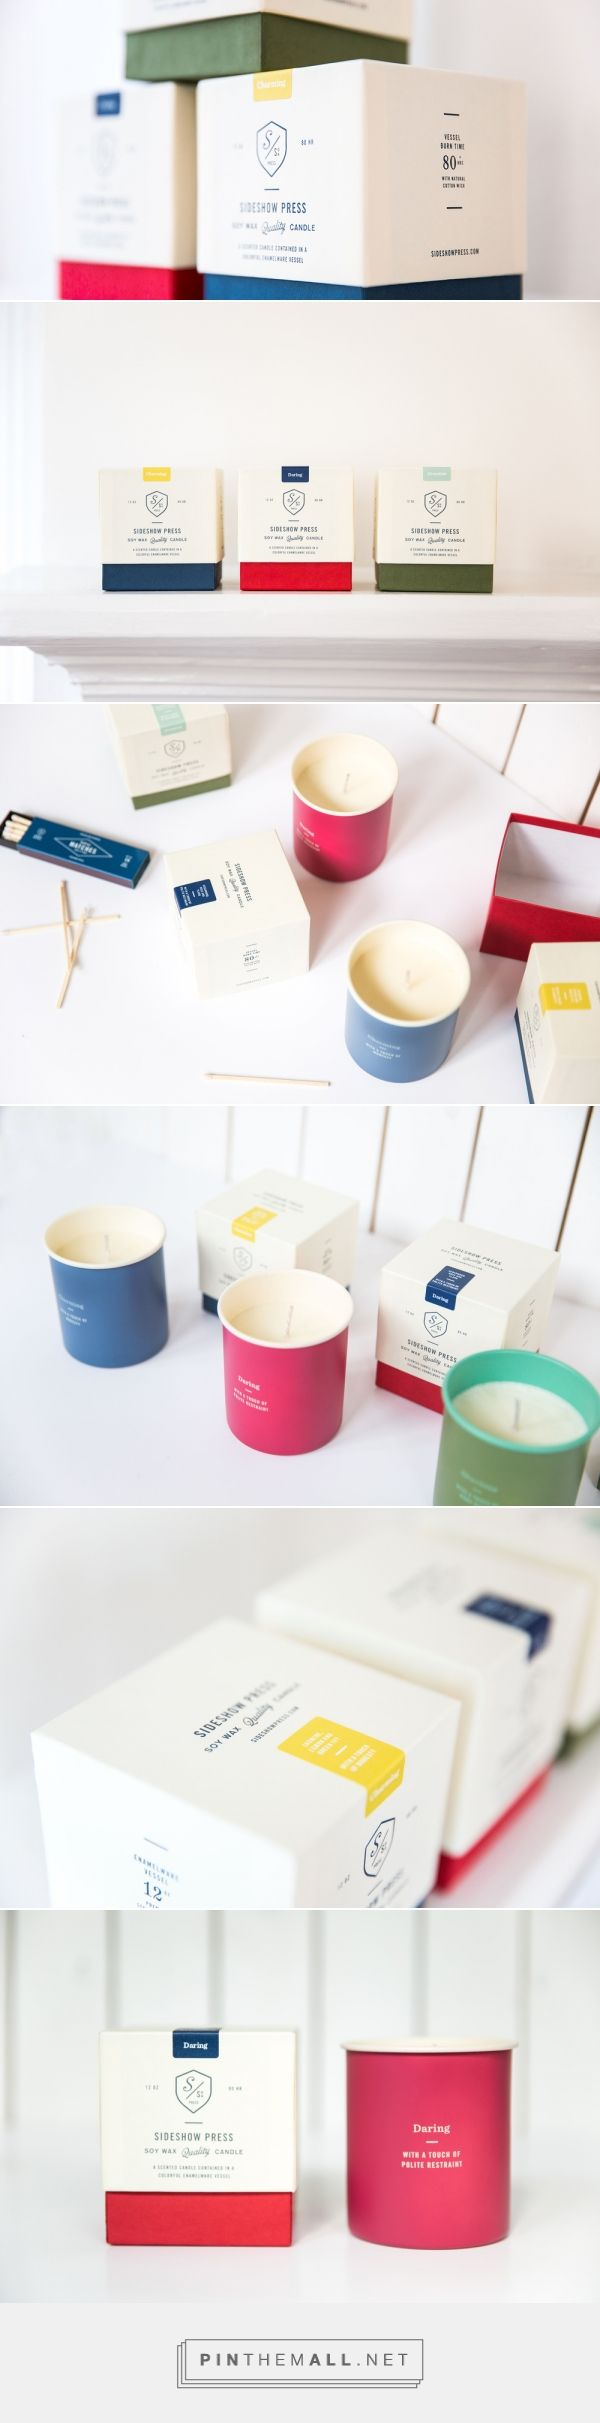 Sideshow Press Candle — The Dieline - Branding & Packaging - created on 2016-03-02 22:15:53